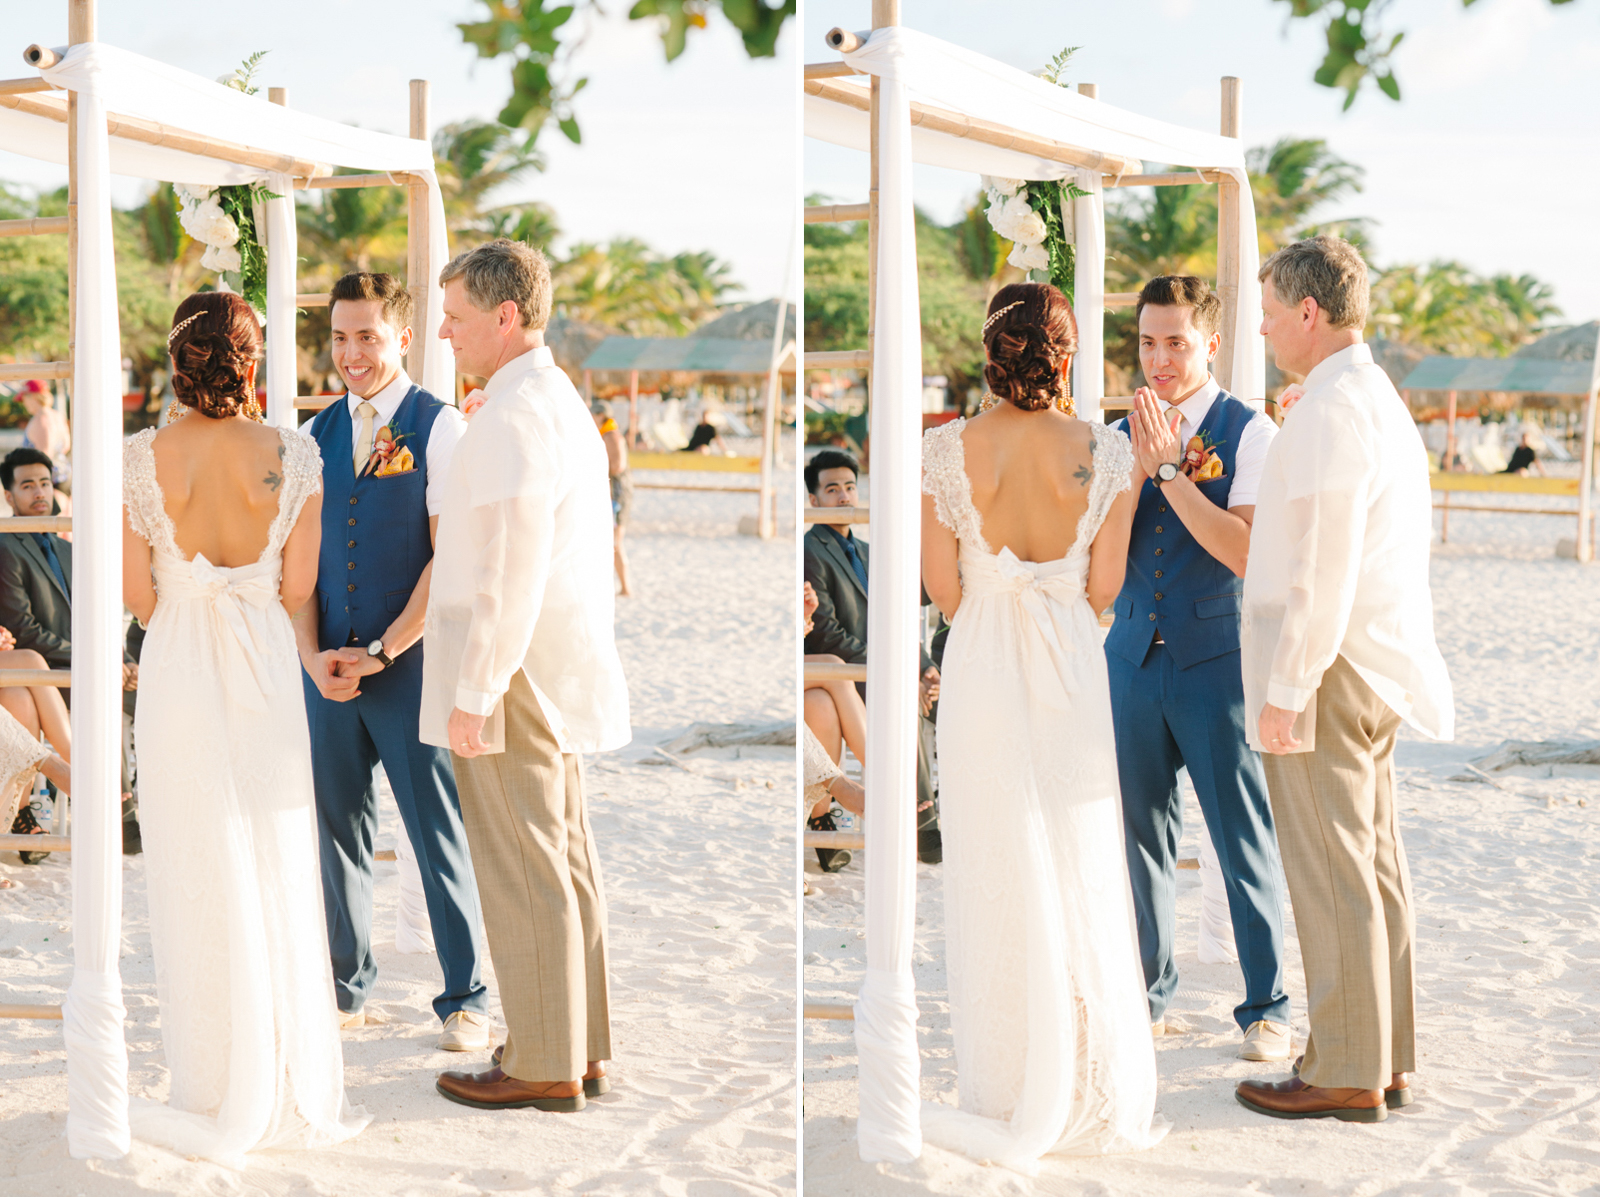 tara mcmullen photography amsterdam manor hotel wedding in aruba best wedding venue in aruba destination wedding photographer aruba indian wedding in aruba-026